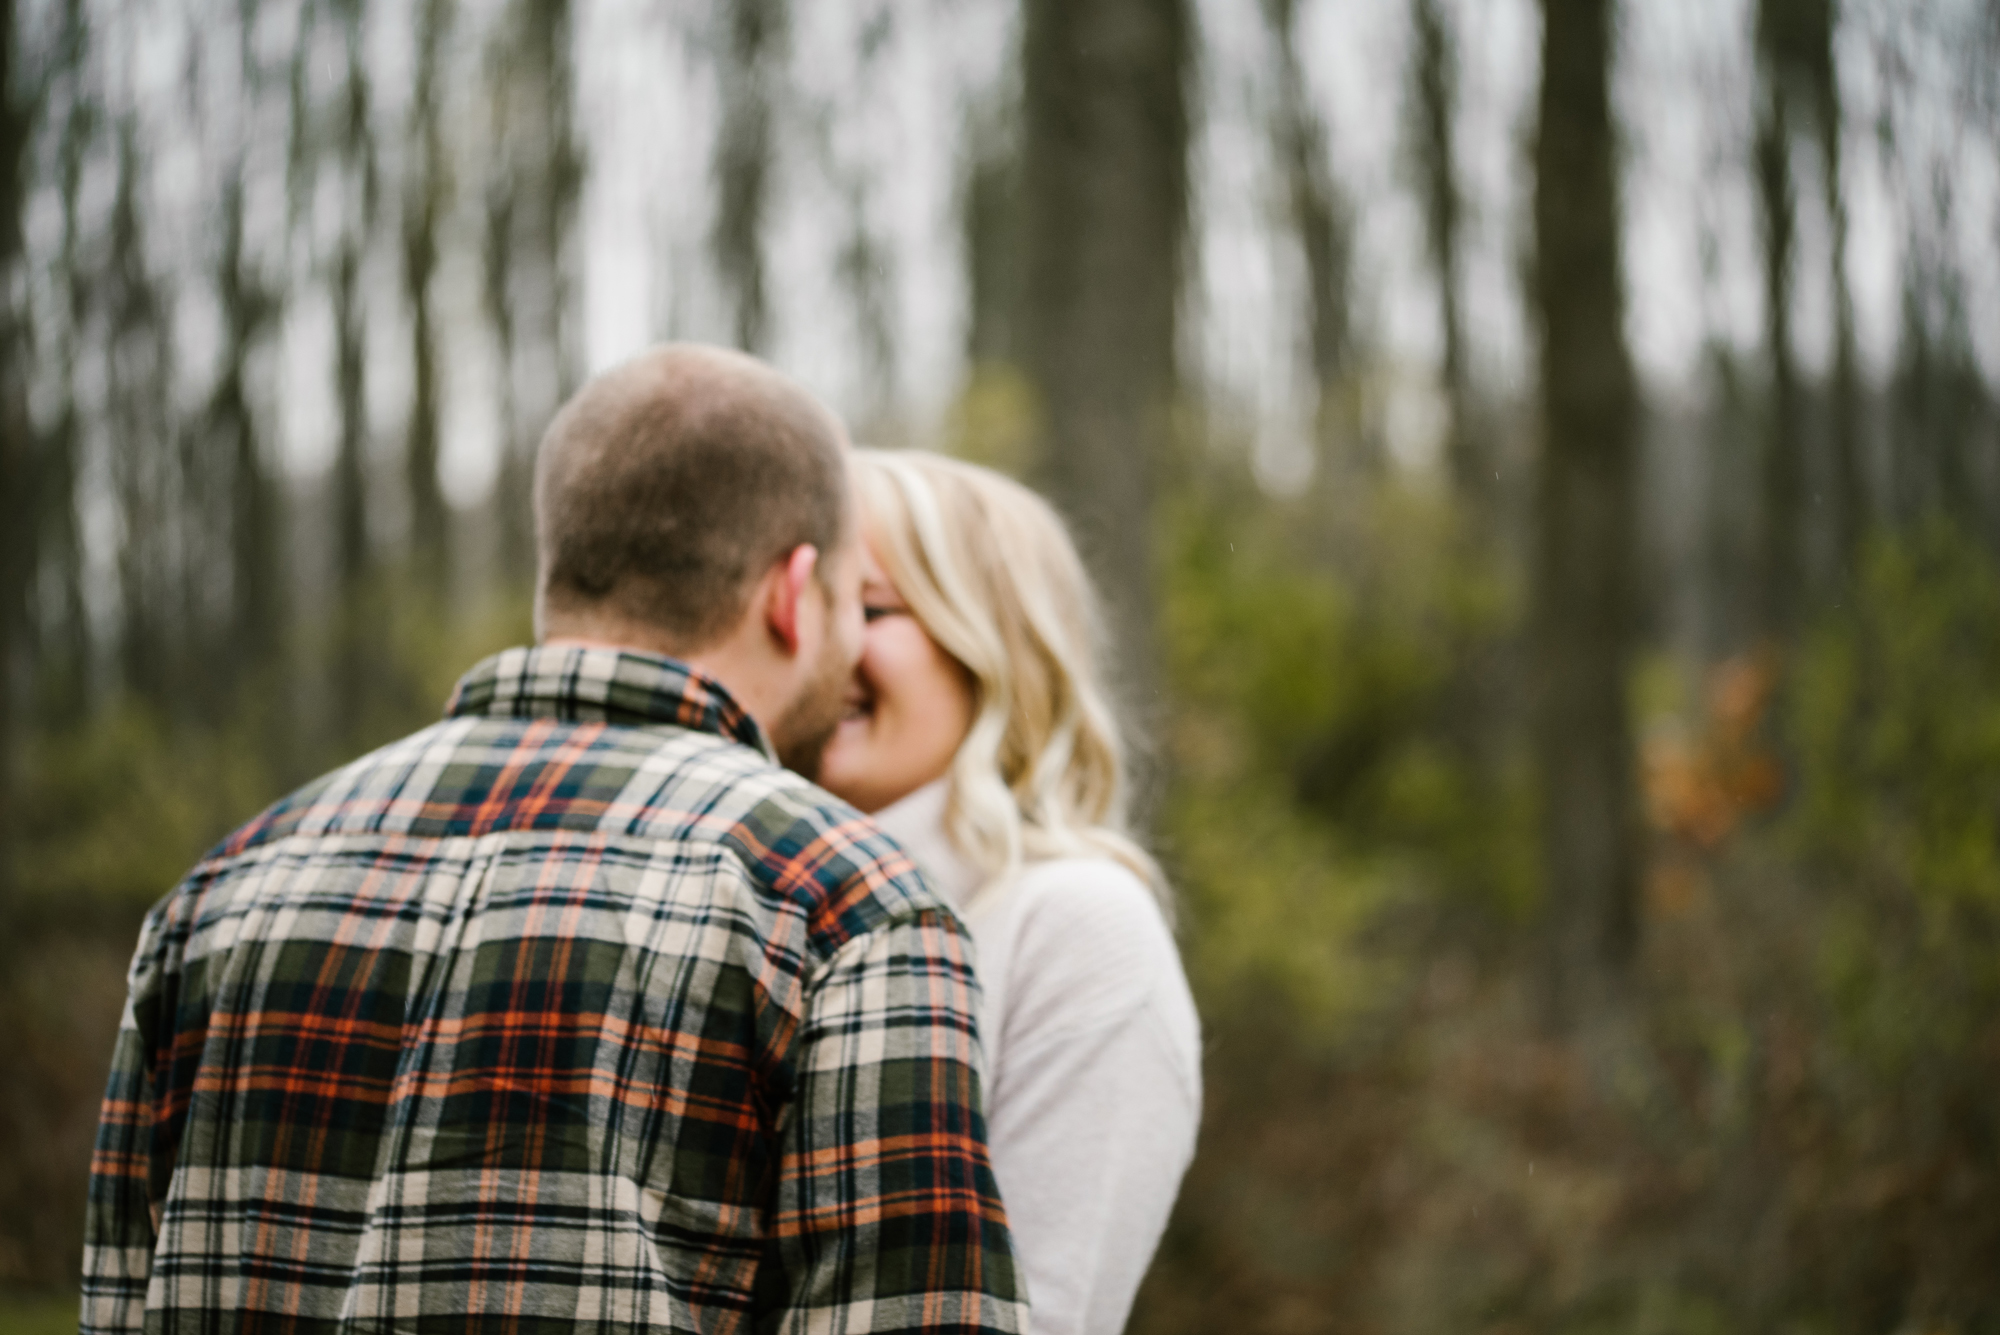 south-bend-indiana-fall-engagement-photographer-sydney-marie (20).jpg